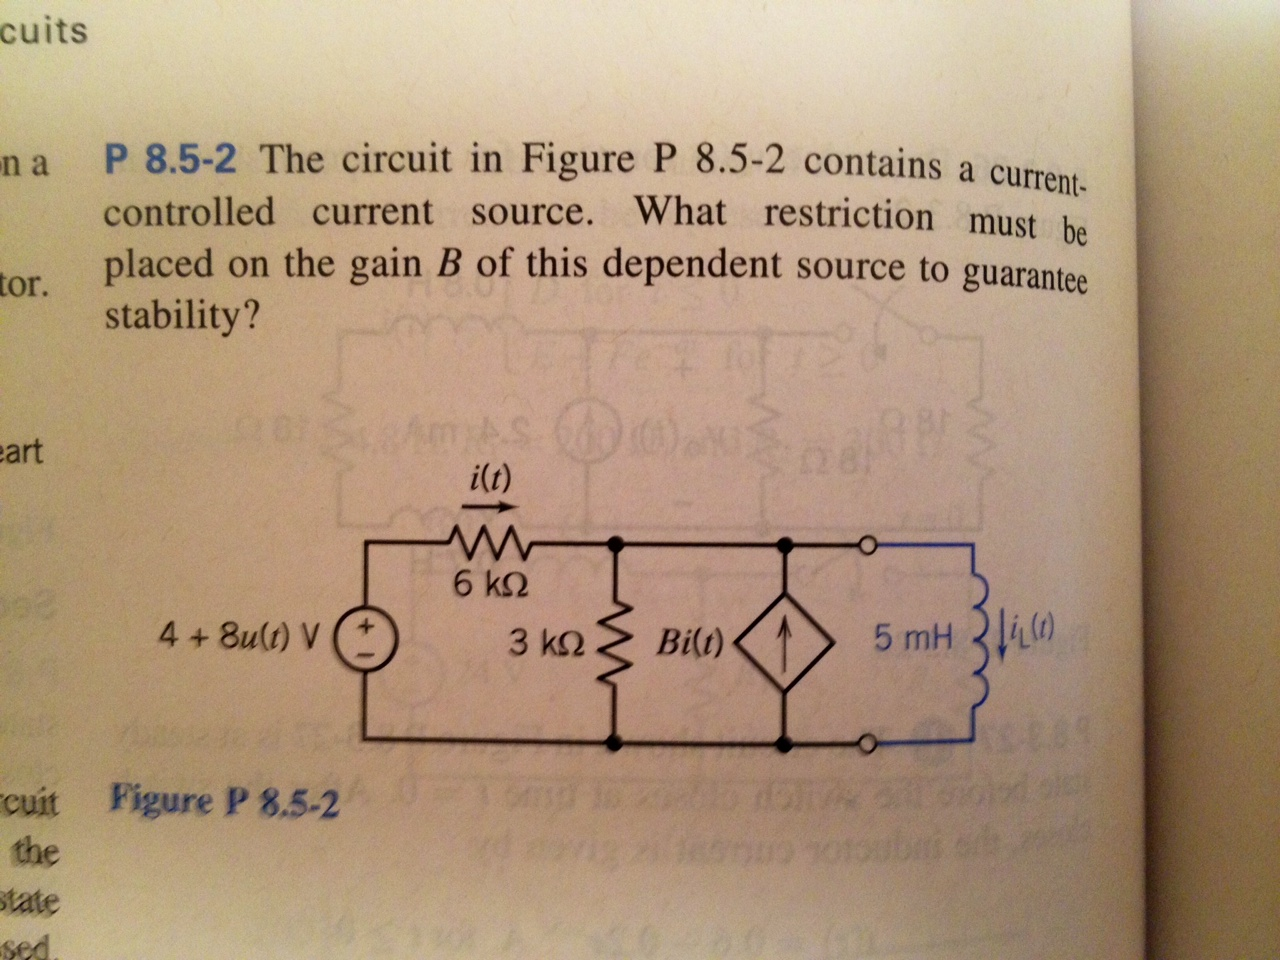 The circuit in Figure P 8.5-2 contains a current c